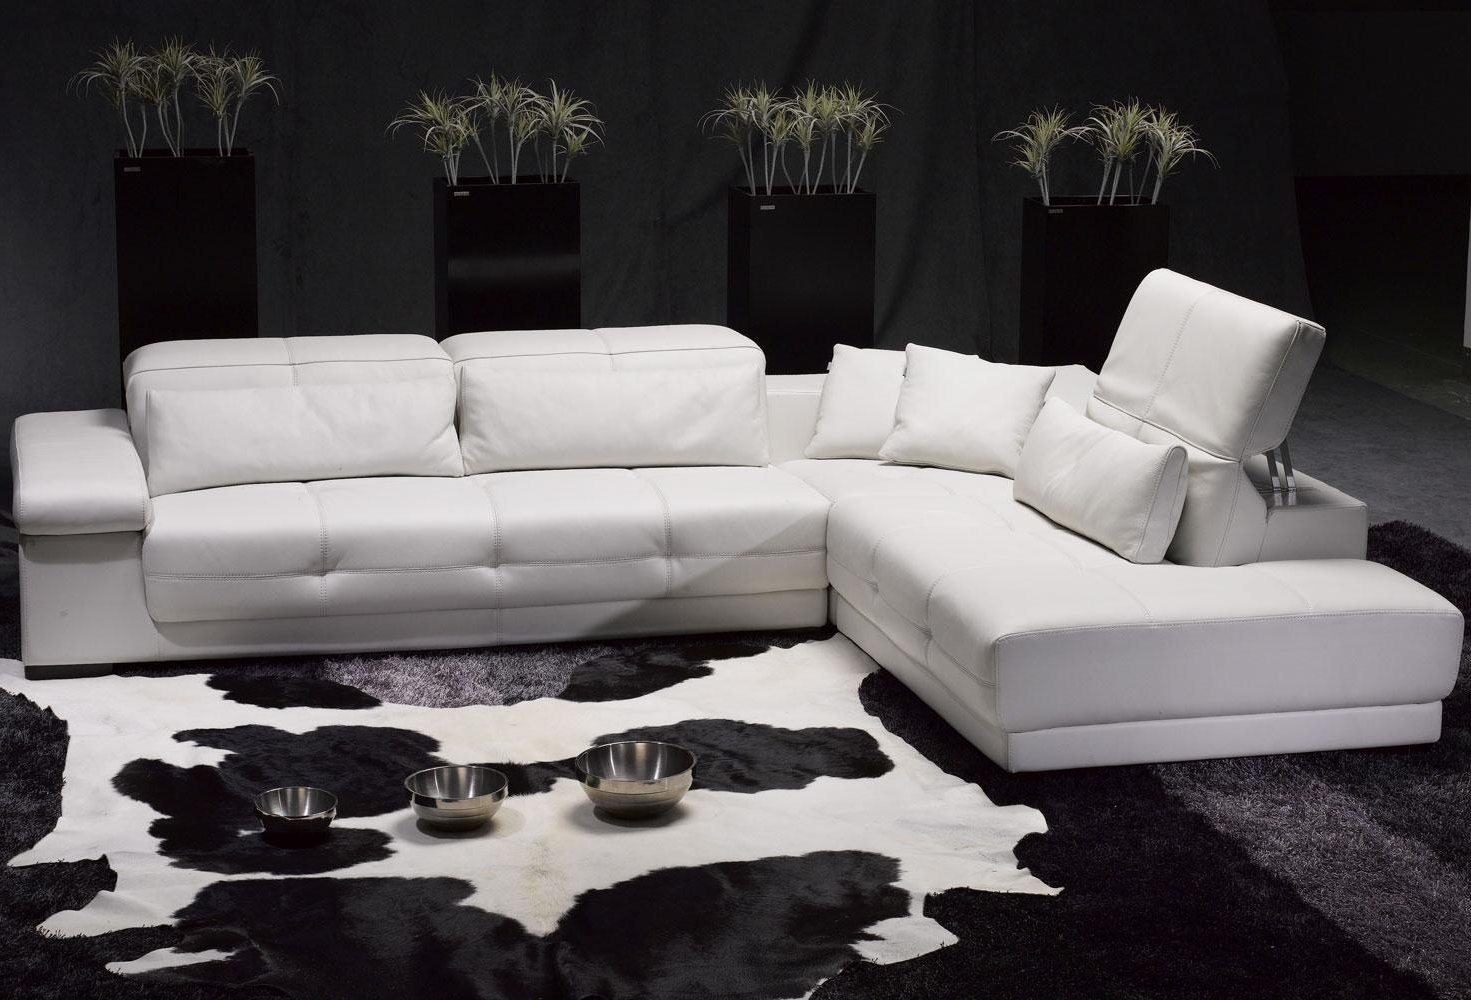 2019 Alluring White Leather Sectional Sofa Ideas For Living Room Pertaining To High End Leather Sectional Sofas (View 1 of 20)